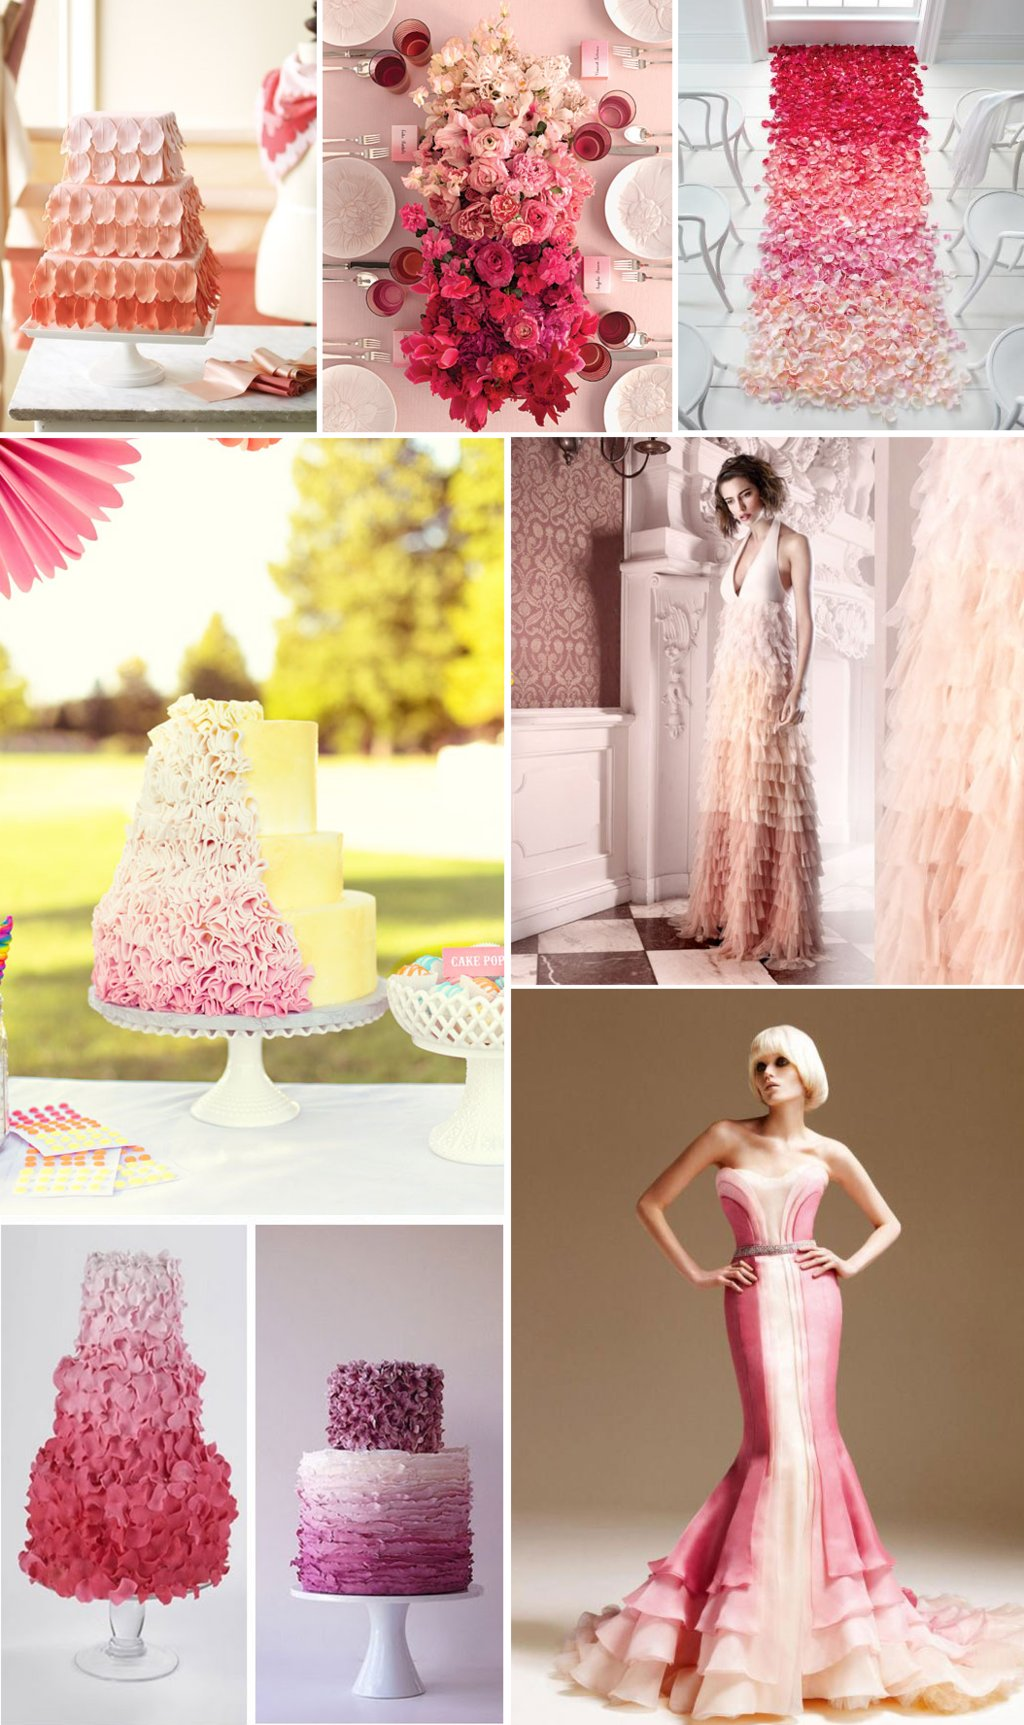 Ombre-wedding-trend-2012-ombre-wedding-cakes-bridal-gowns-flower-centerpieces.full